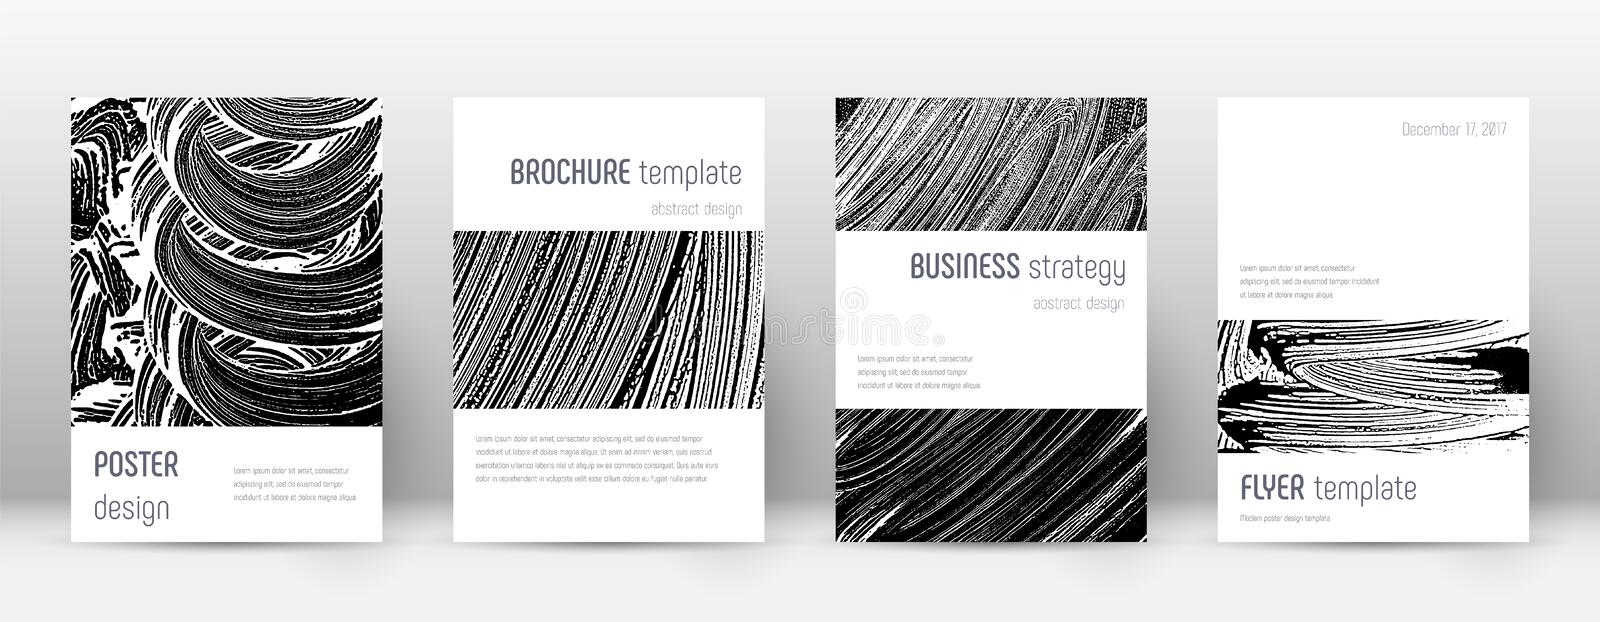 Cover page design template. Minimalistic brochure. Layout. Classic trendy abstract cover page. Black and white grunge texture background. Modern poster stock illustration